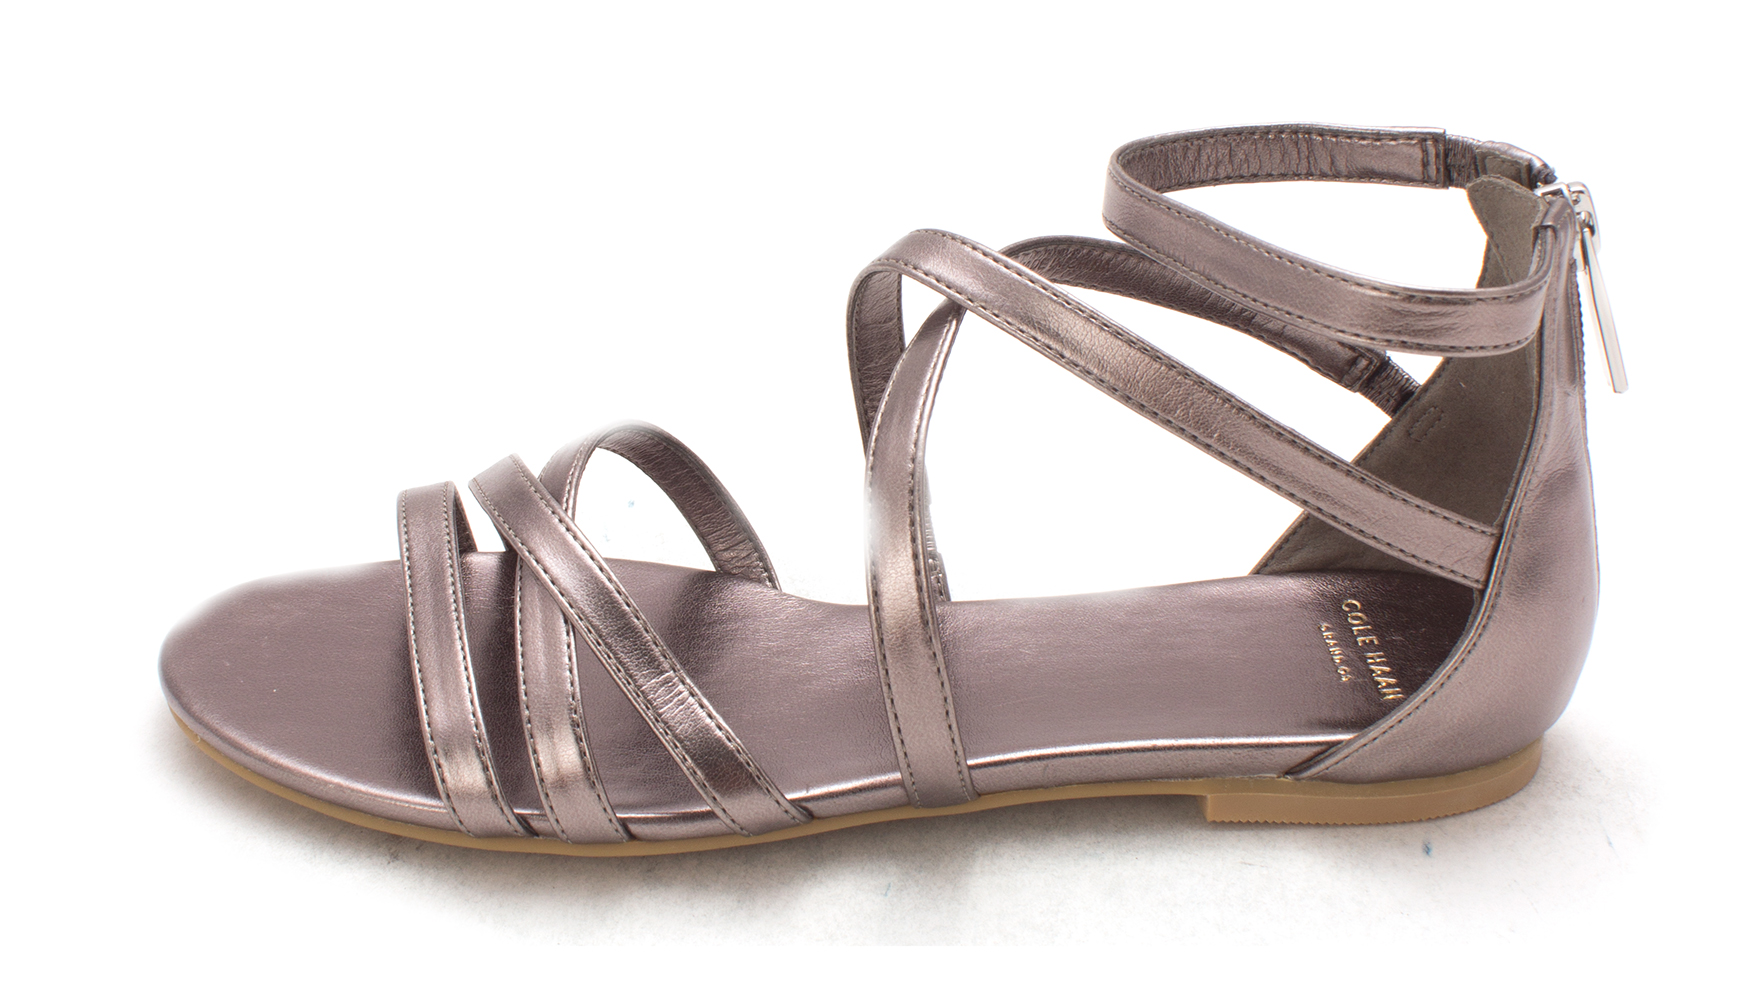 Cole Haan Womens 14A4110P Open Toe Casual Strappy Sandals Gunmetal Size 60